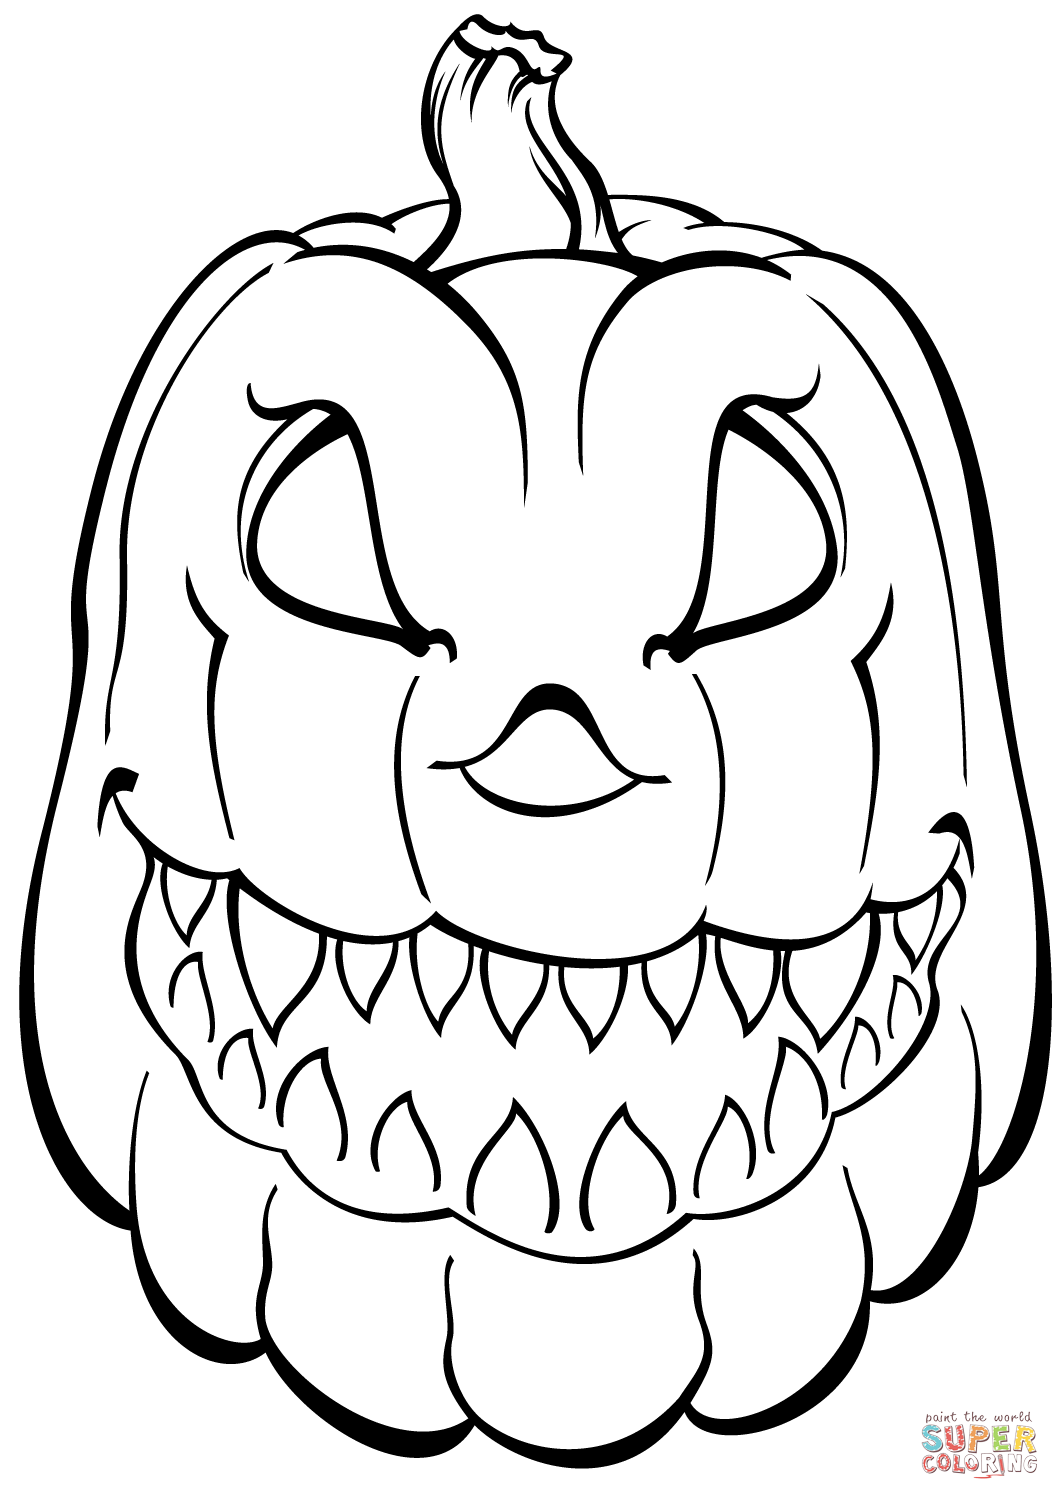 pumpkin colouring 20 free printable pumpkin coloring pages for adults pumpkin colouring